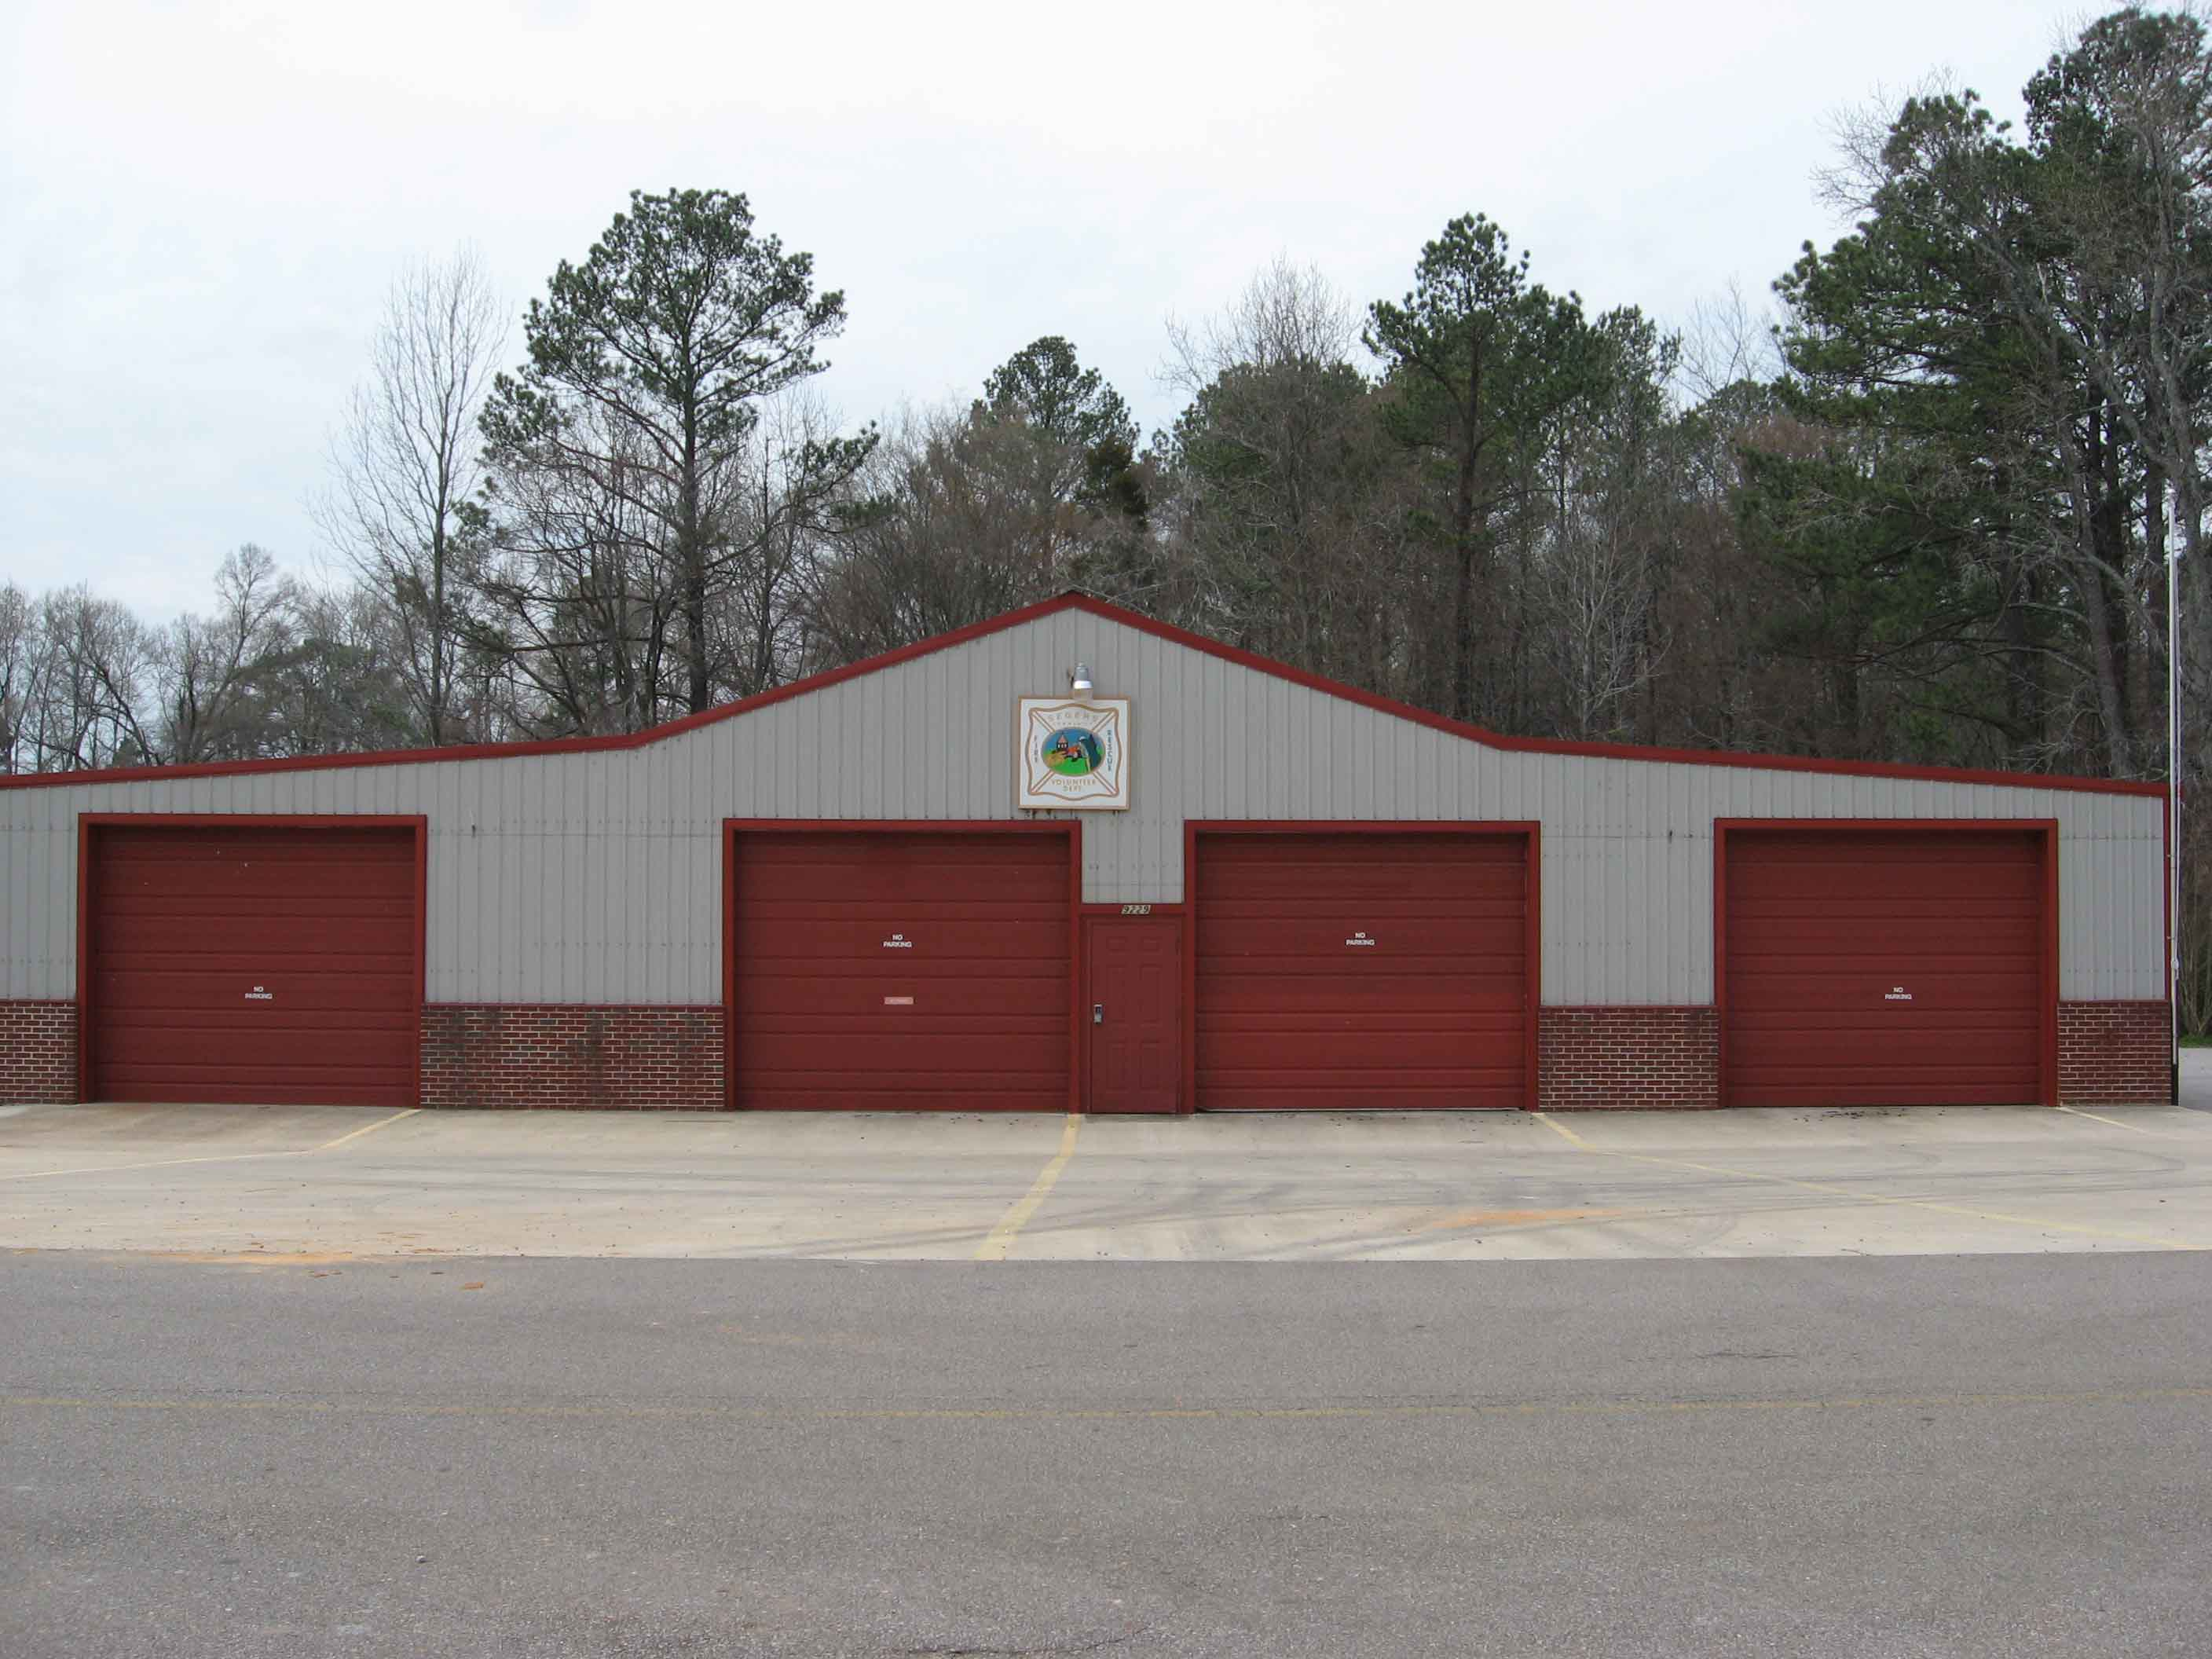 Segers Fire Station